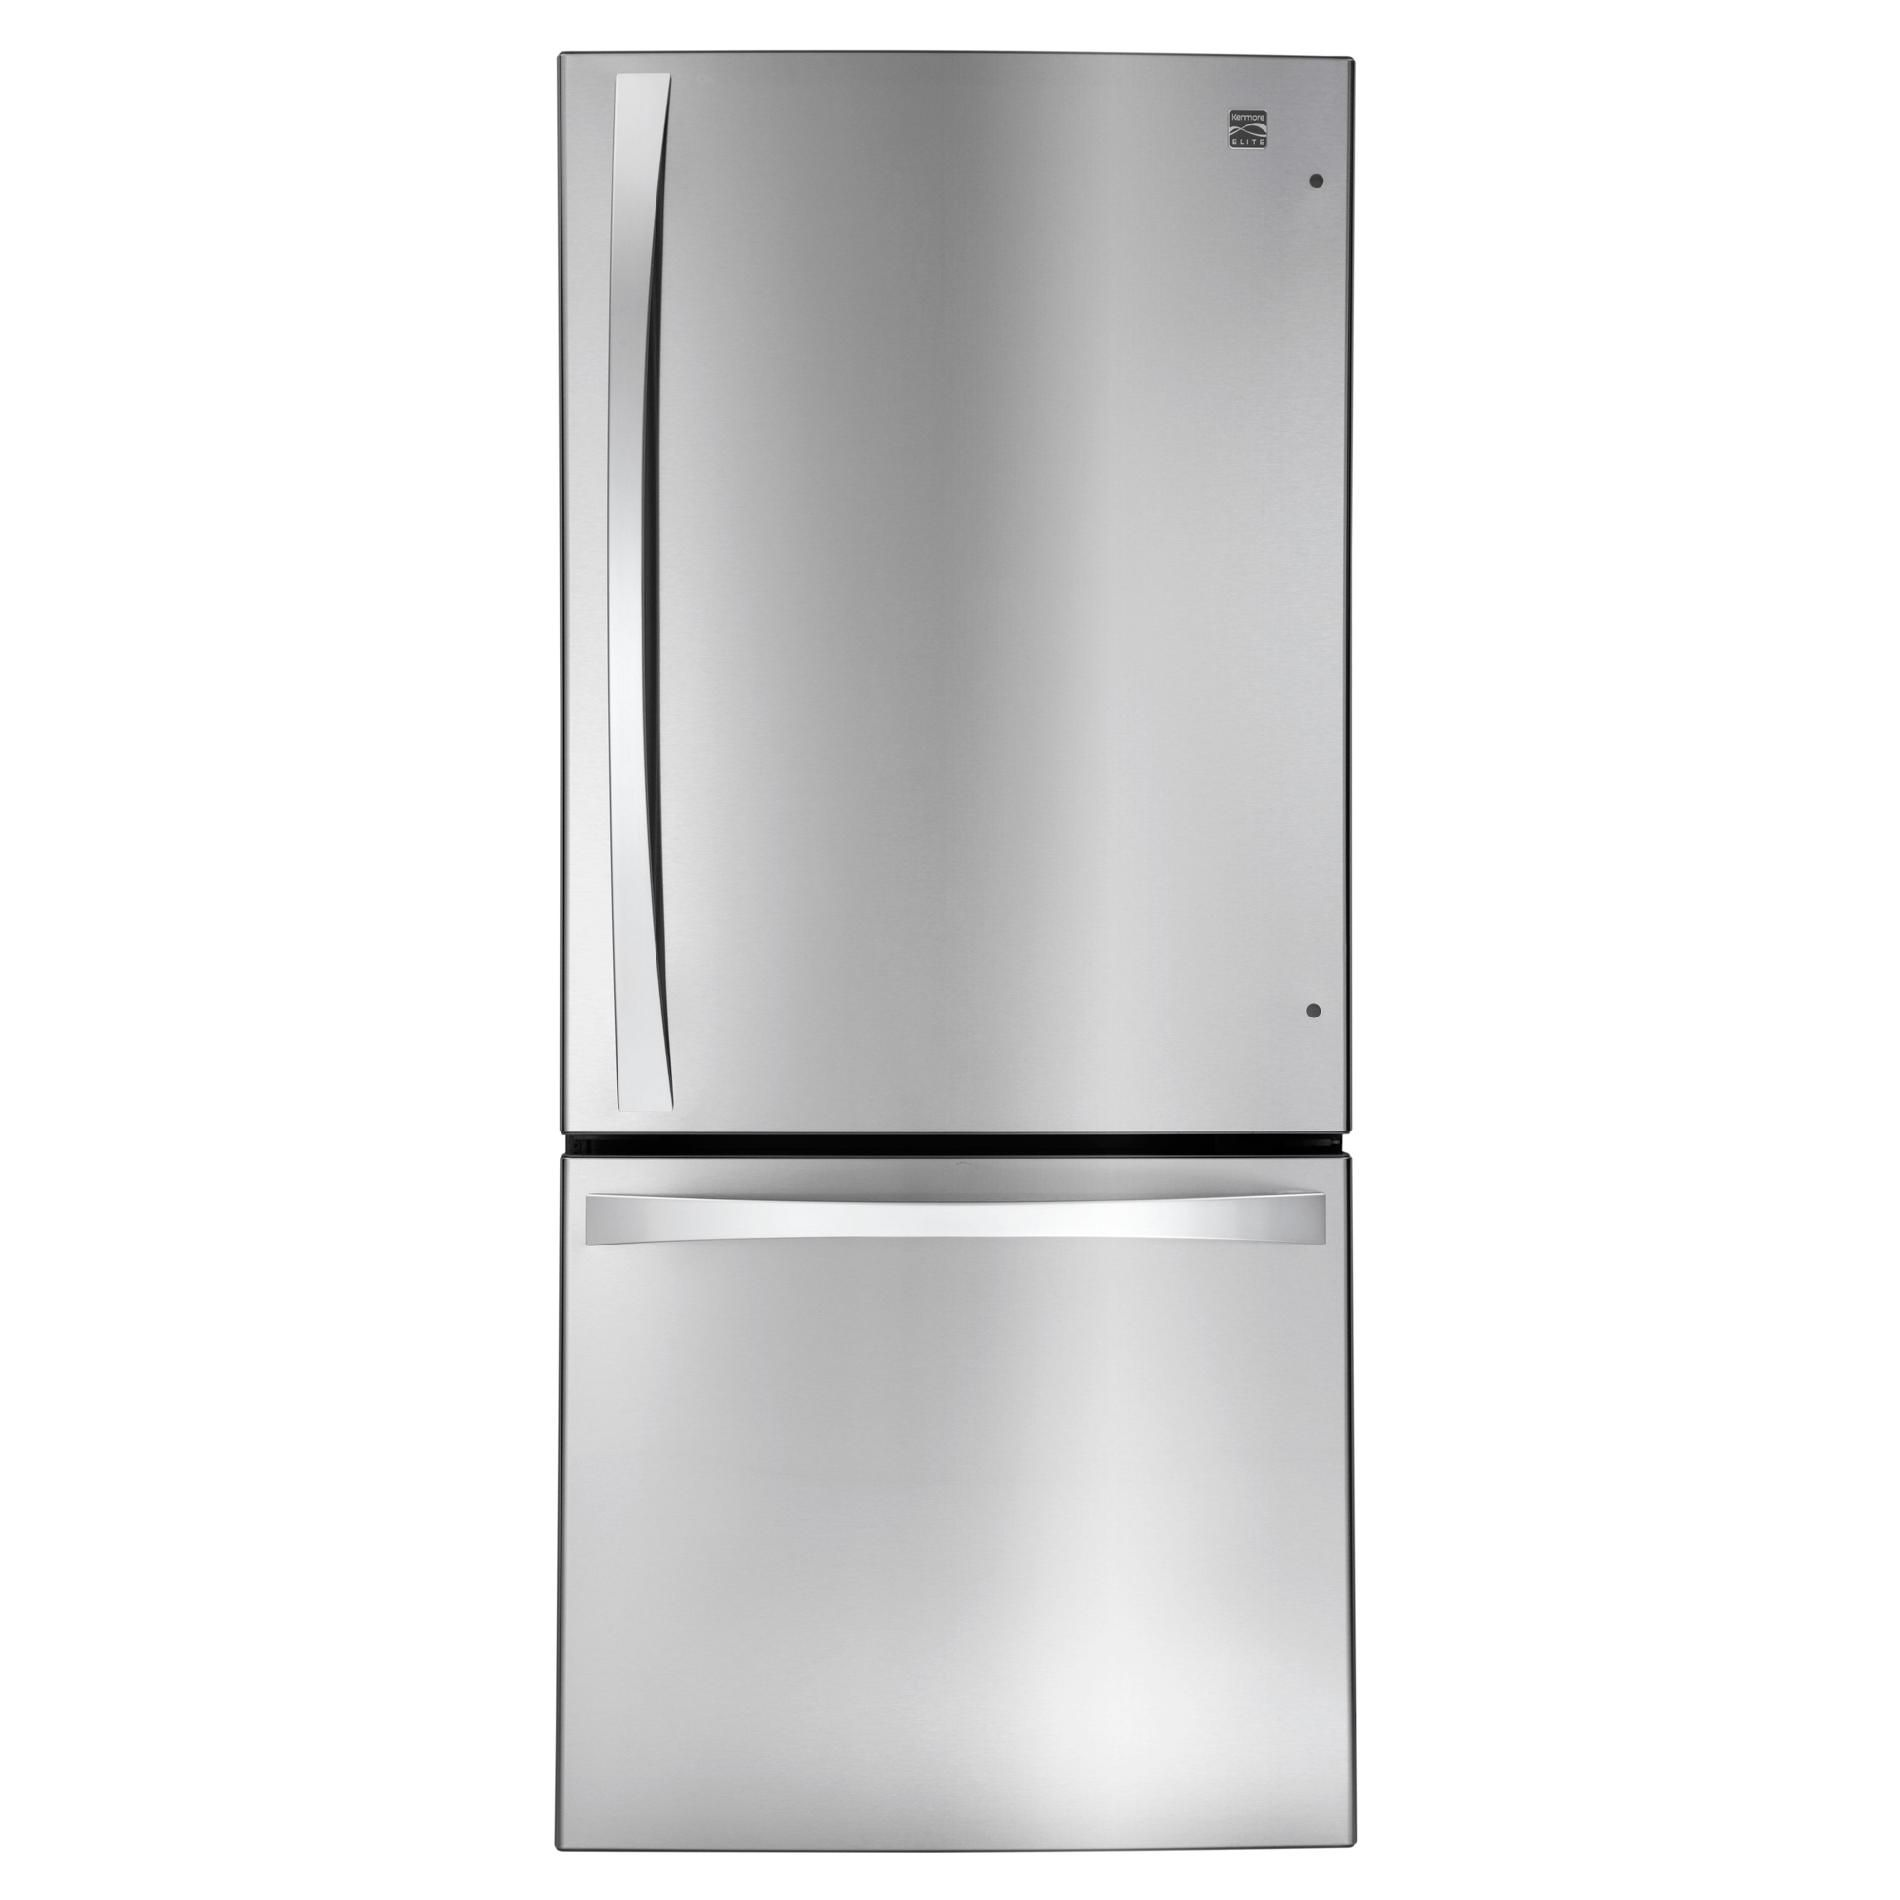 Kenmore Elite Bottom Freezer Refrigerator another boring one